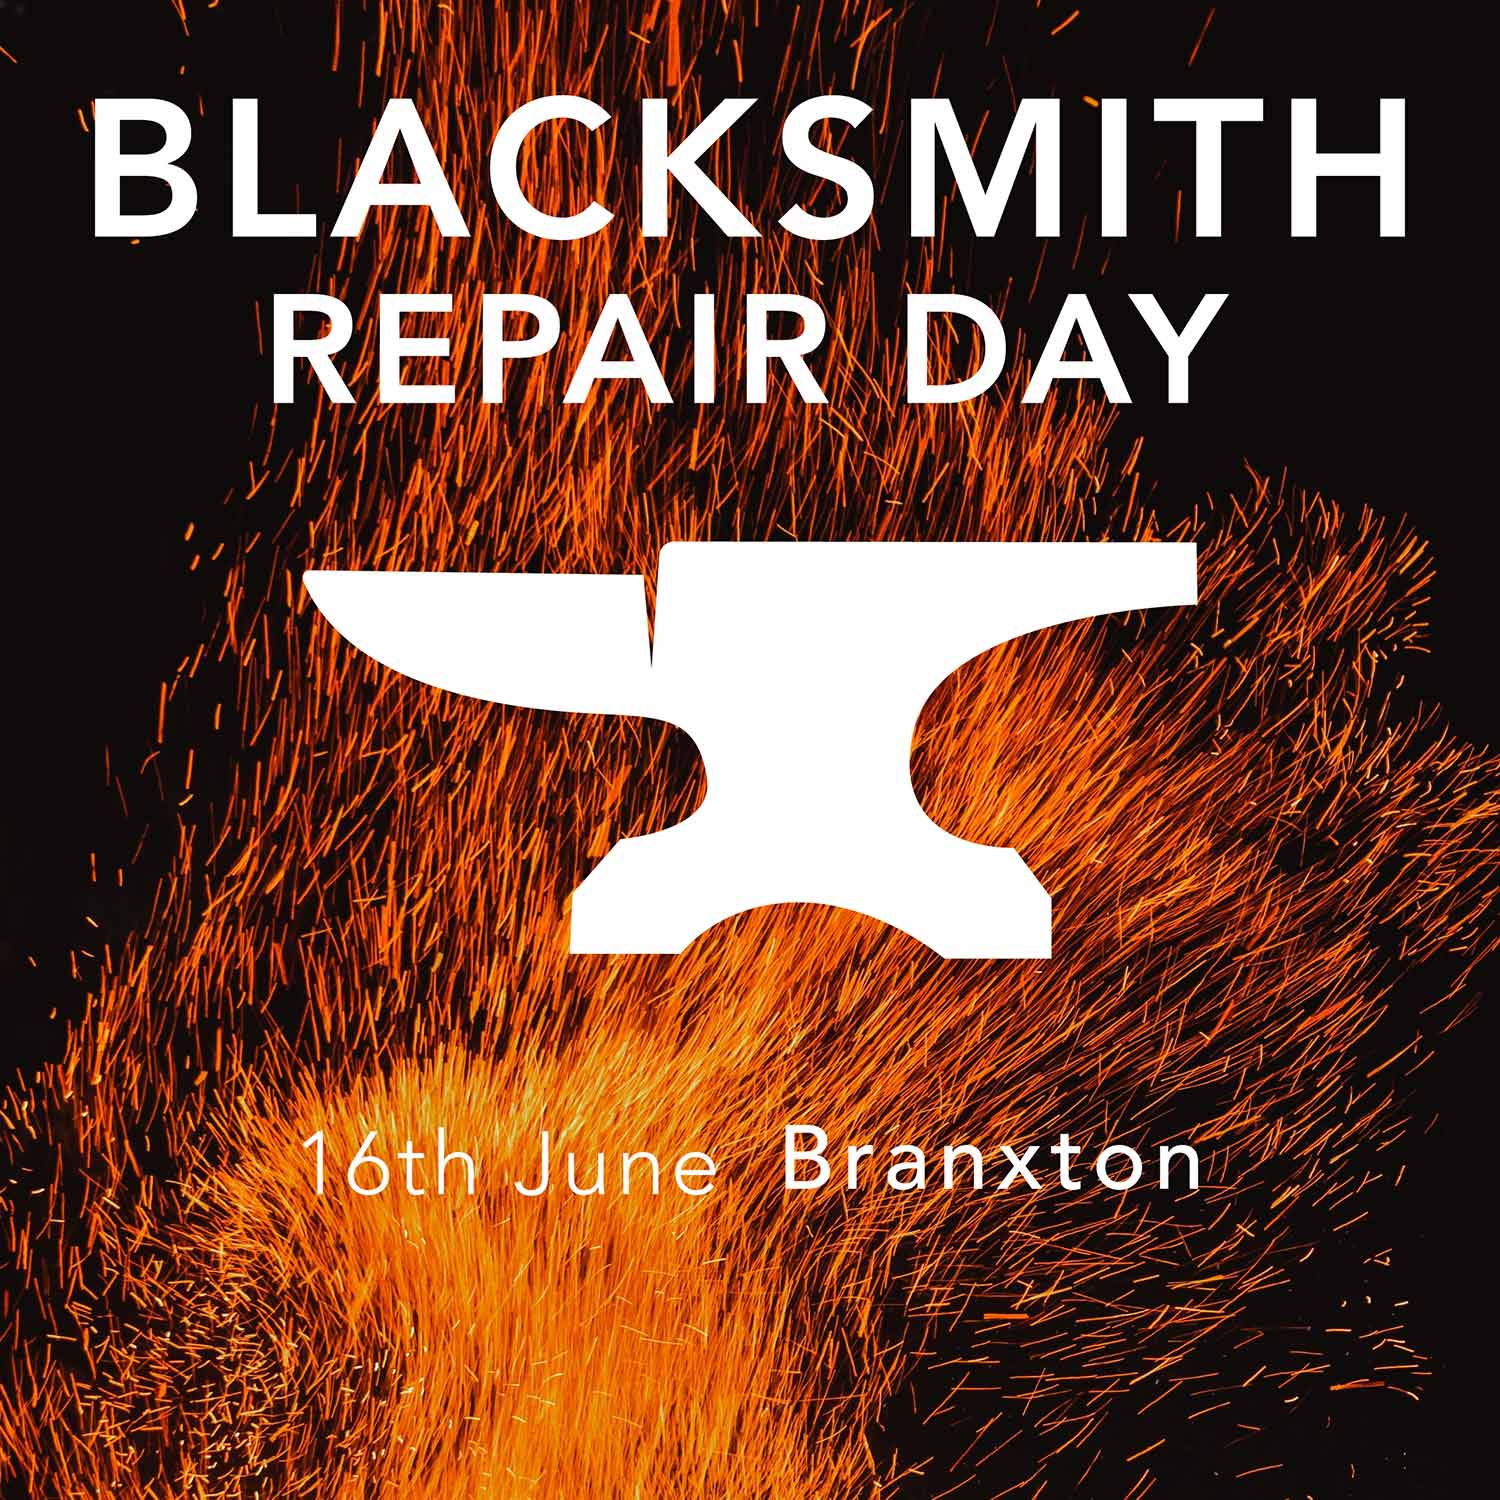 Blacksmith Repair Day fosters a culture of reuse